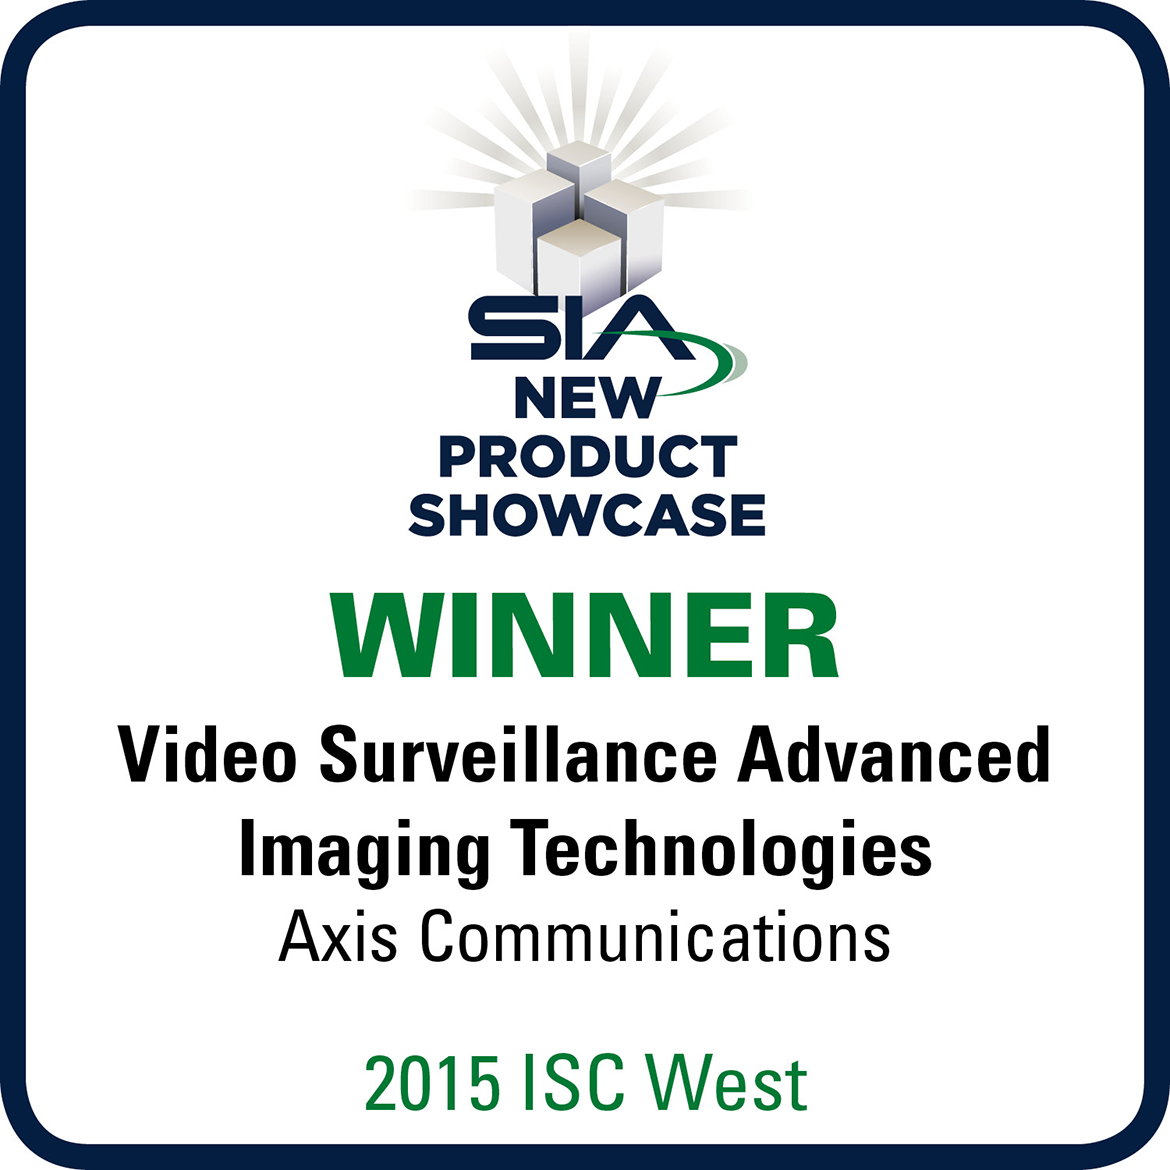 Best in Video Surveillance Advanced Imaging Technologies